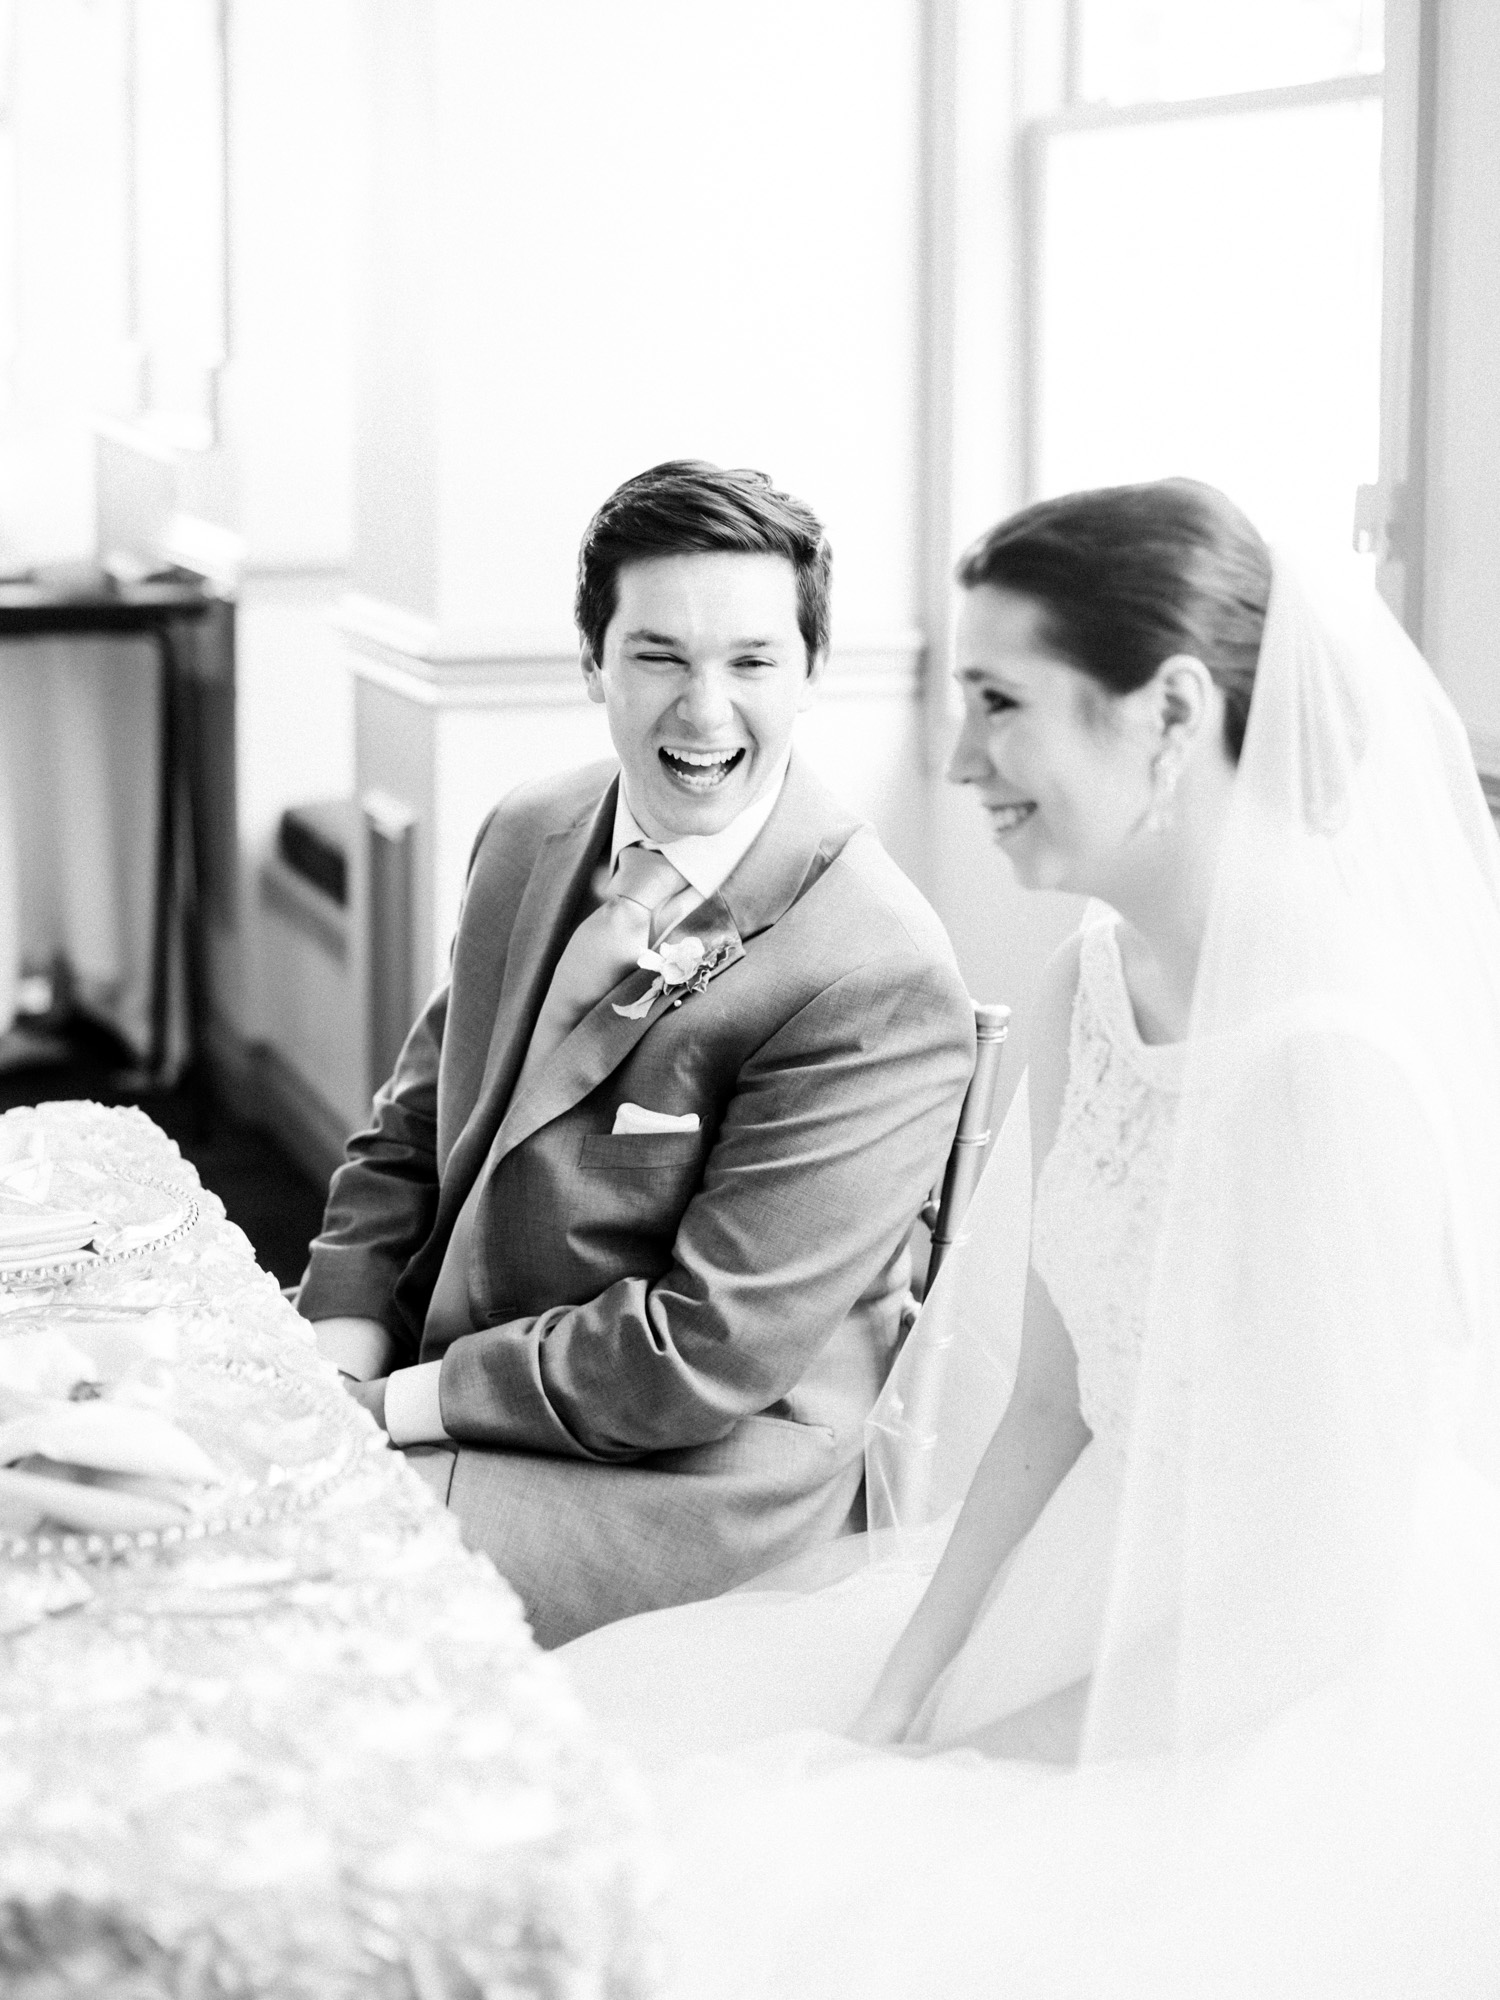 A groom laughs with his bride at their sweetheart table at The Polo Fields wedding venue in Ann Arbor